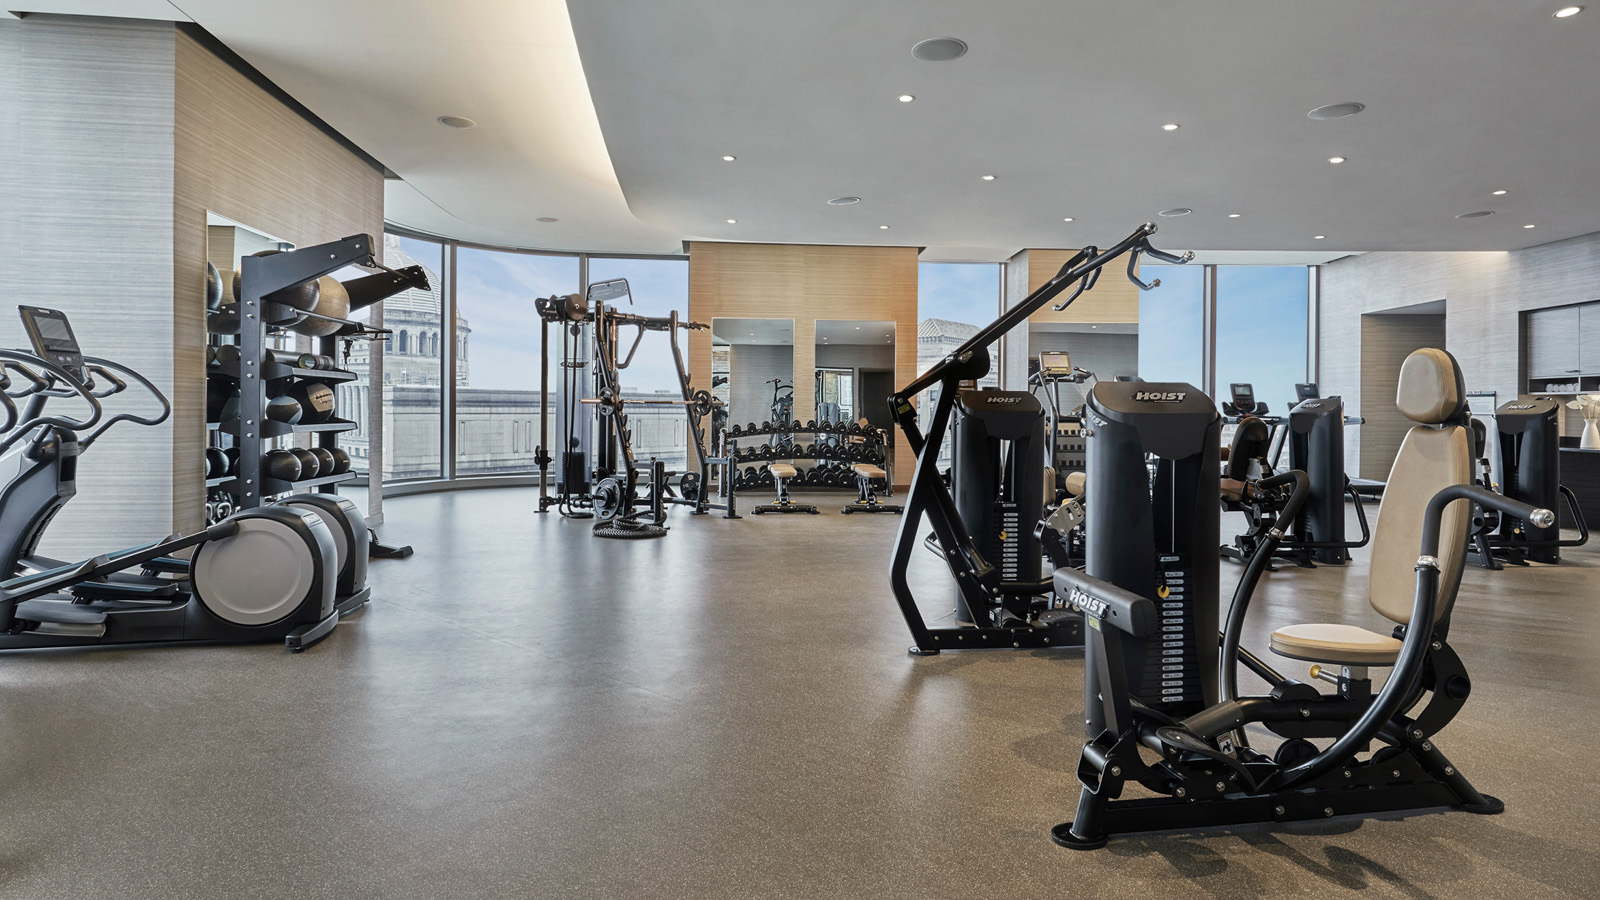 The Wellness Floor At Four Seasons Hotel One Dalton Street Boston Announces Its Resolution To Make 2020 The Healthiest Year Yet